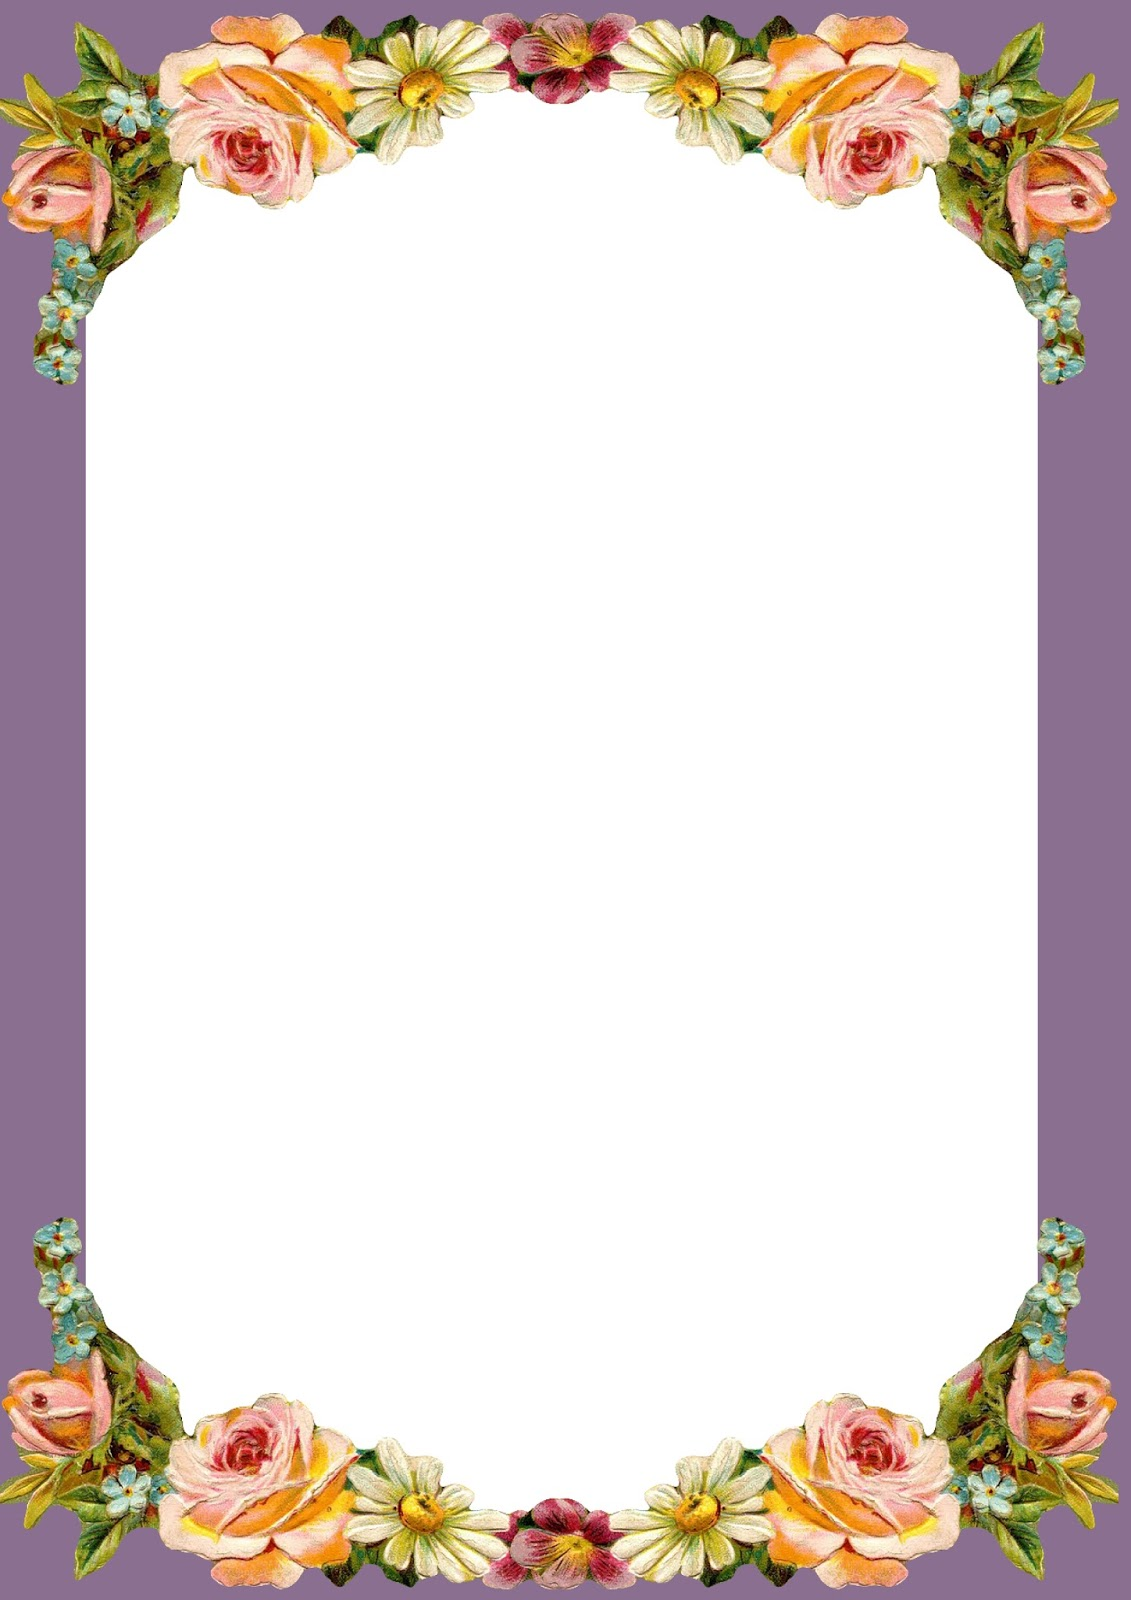 Crush image for printable borders